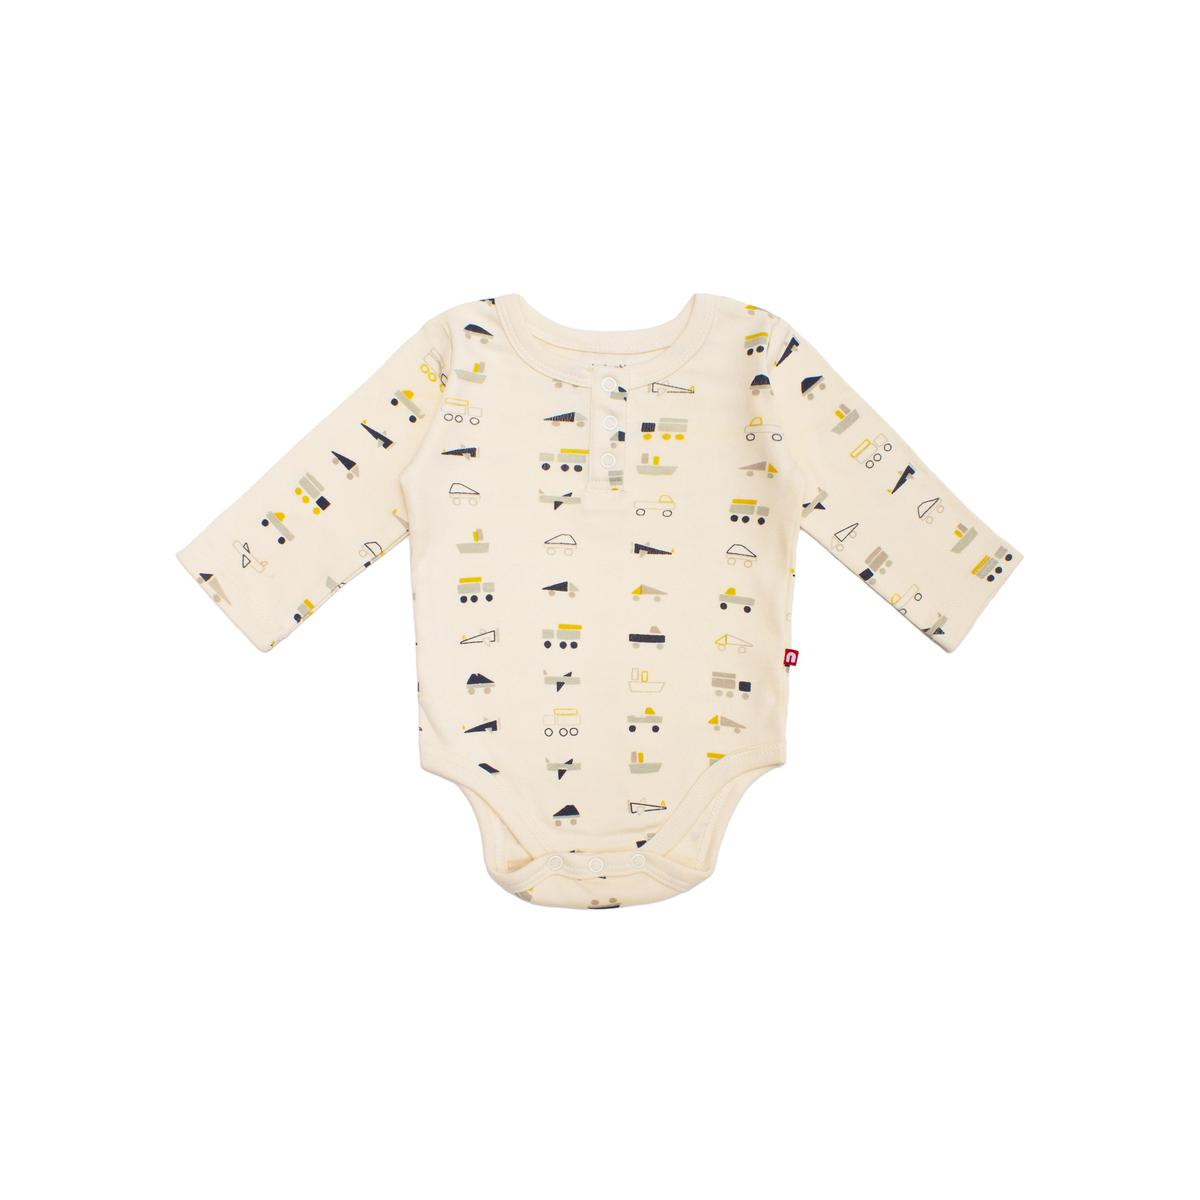 Nino Bambino - 100% Organic Cotton Round Neck Full Sleeve  Color Bodysuit For Baby Boy And Baby Girl